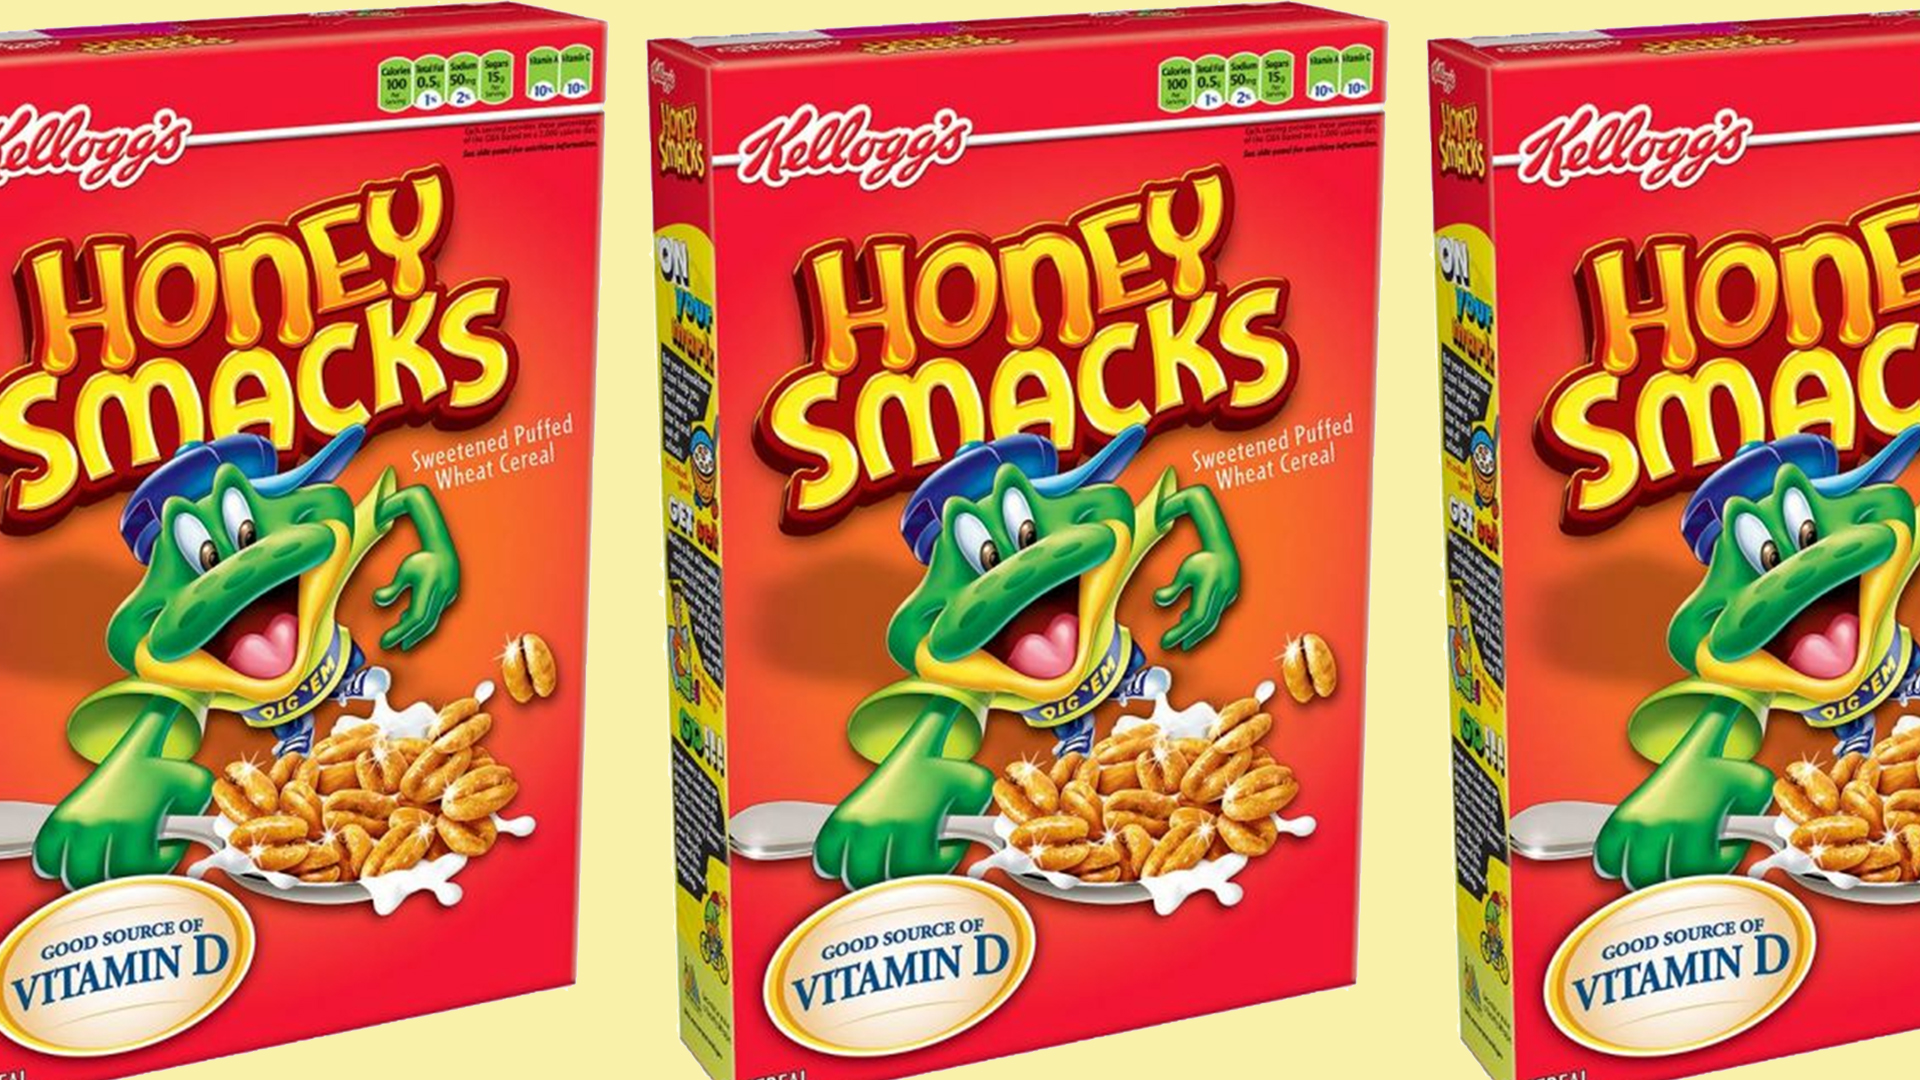 Cdc warns do not eat or sell any honey smacks cereal because of cdc warns do not eat or sell any honey smacks cereal because of salmonella ccuart Choice Image